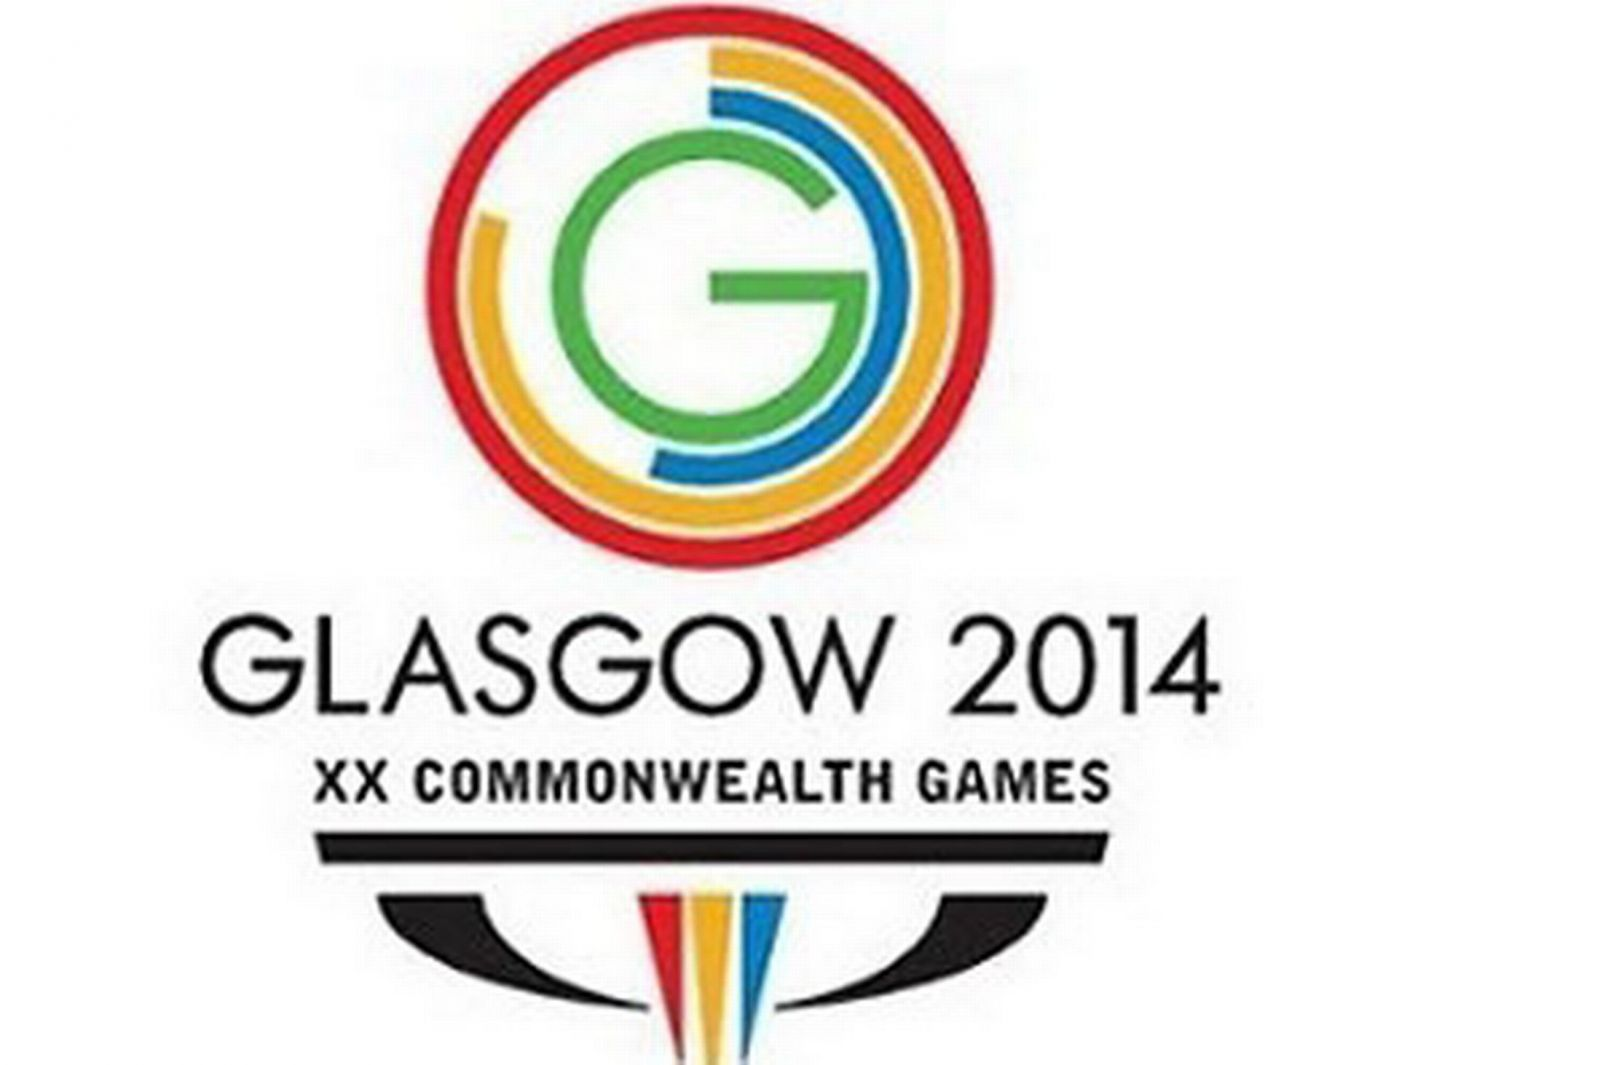 glasgow-2014-commonwealth-games-logo(1).jpg